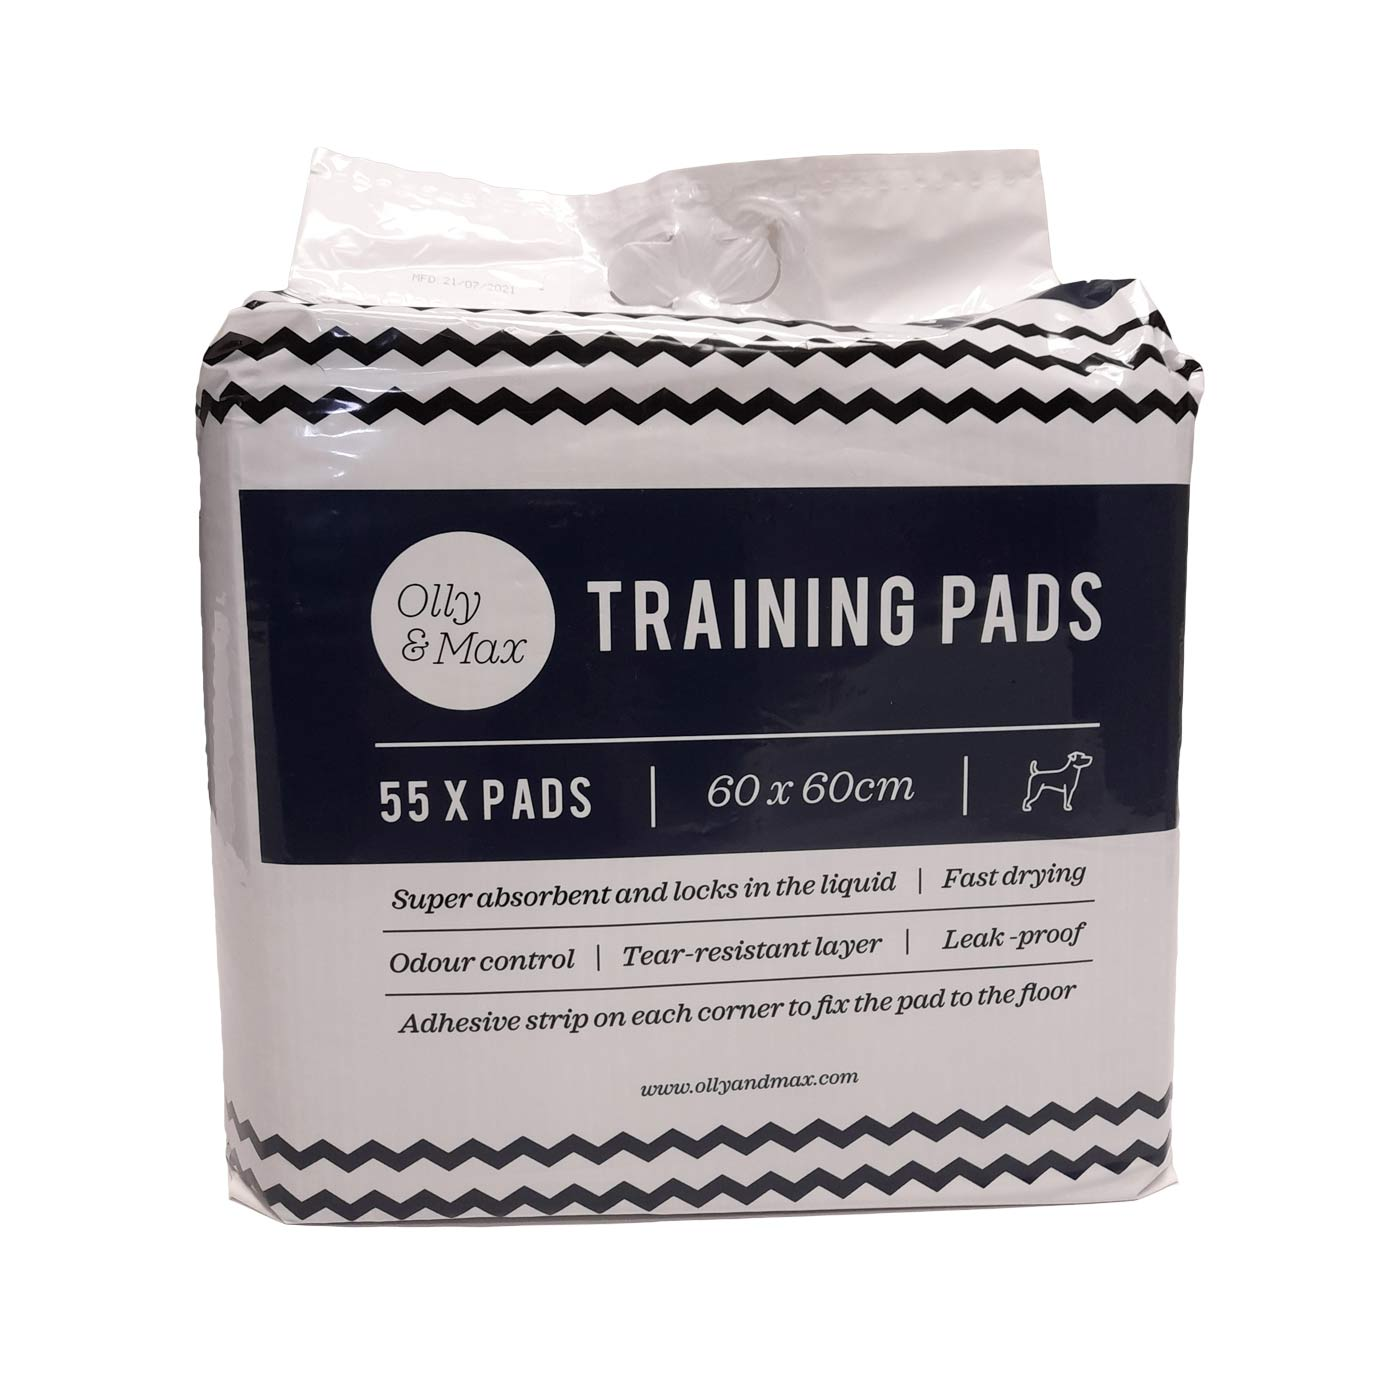 Olly & Max Puppy Training Pads